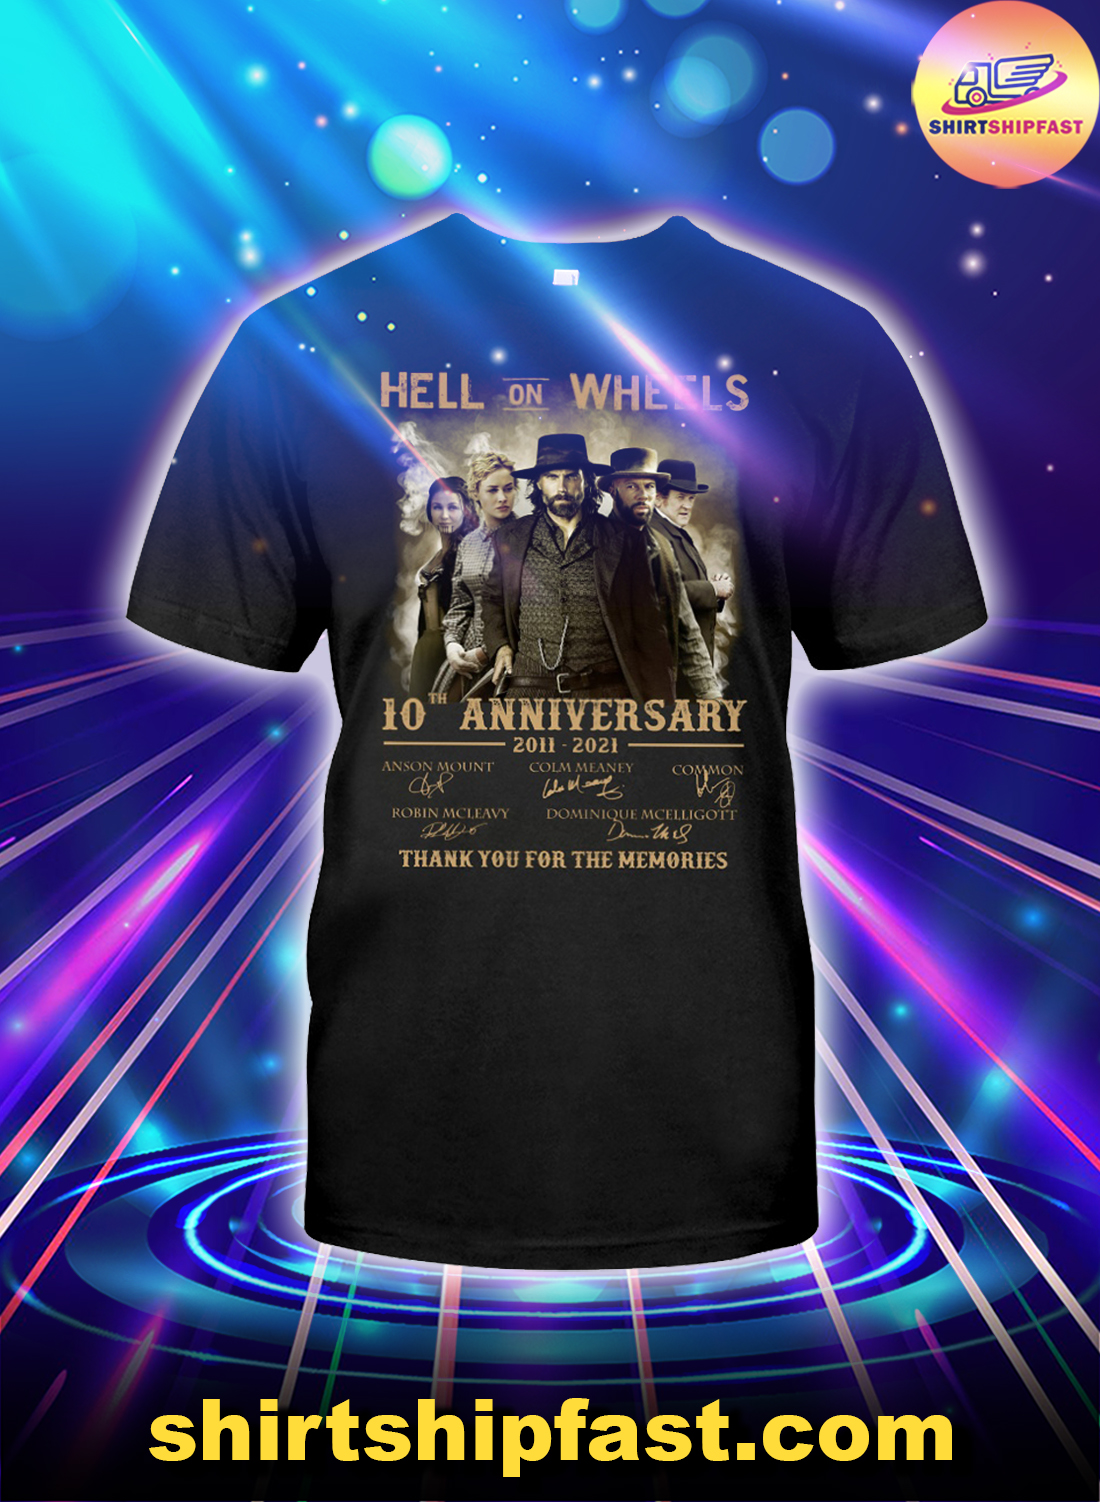 Hell on Wheels 10th anniversary thank you for the memories shirt